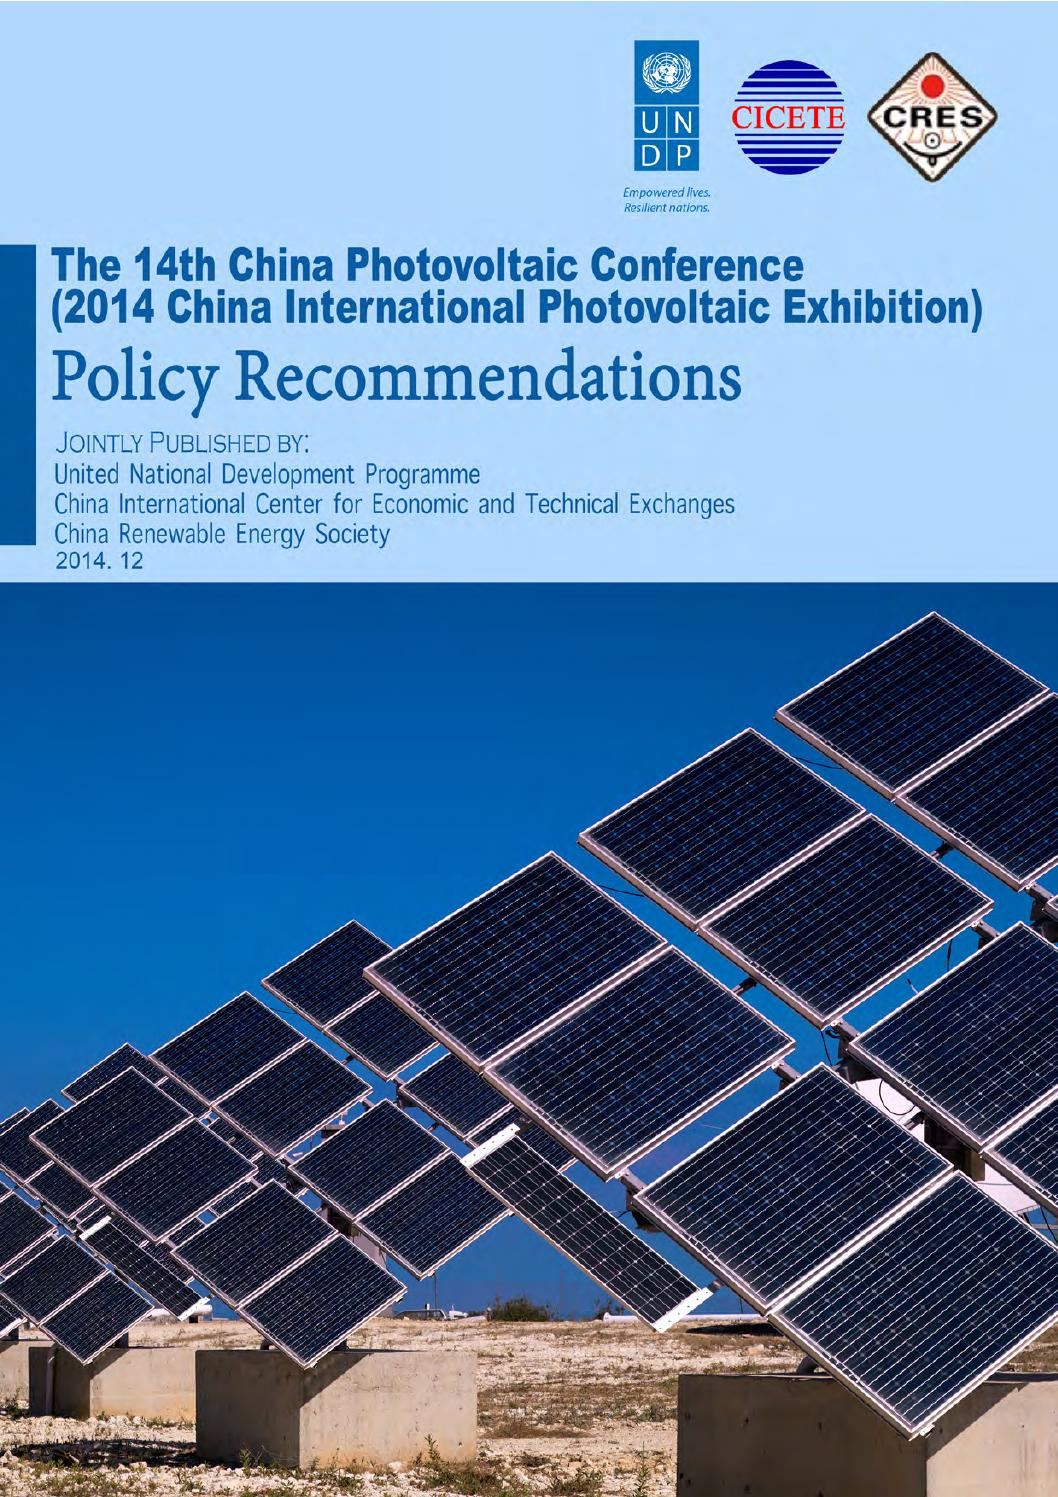 4th PERC Solar Cell and Bifacial Module Forum 2018_EnergyTrend 2018 china international silicon conference photovoltaic industrial development forum